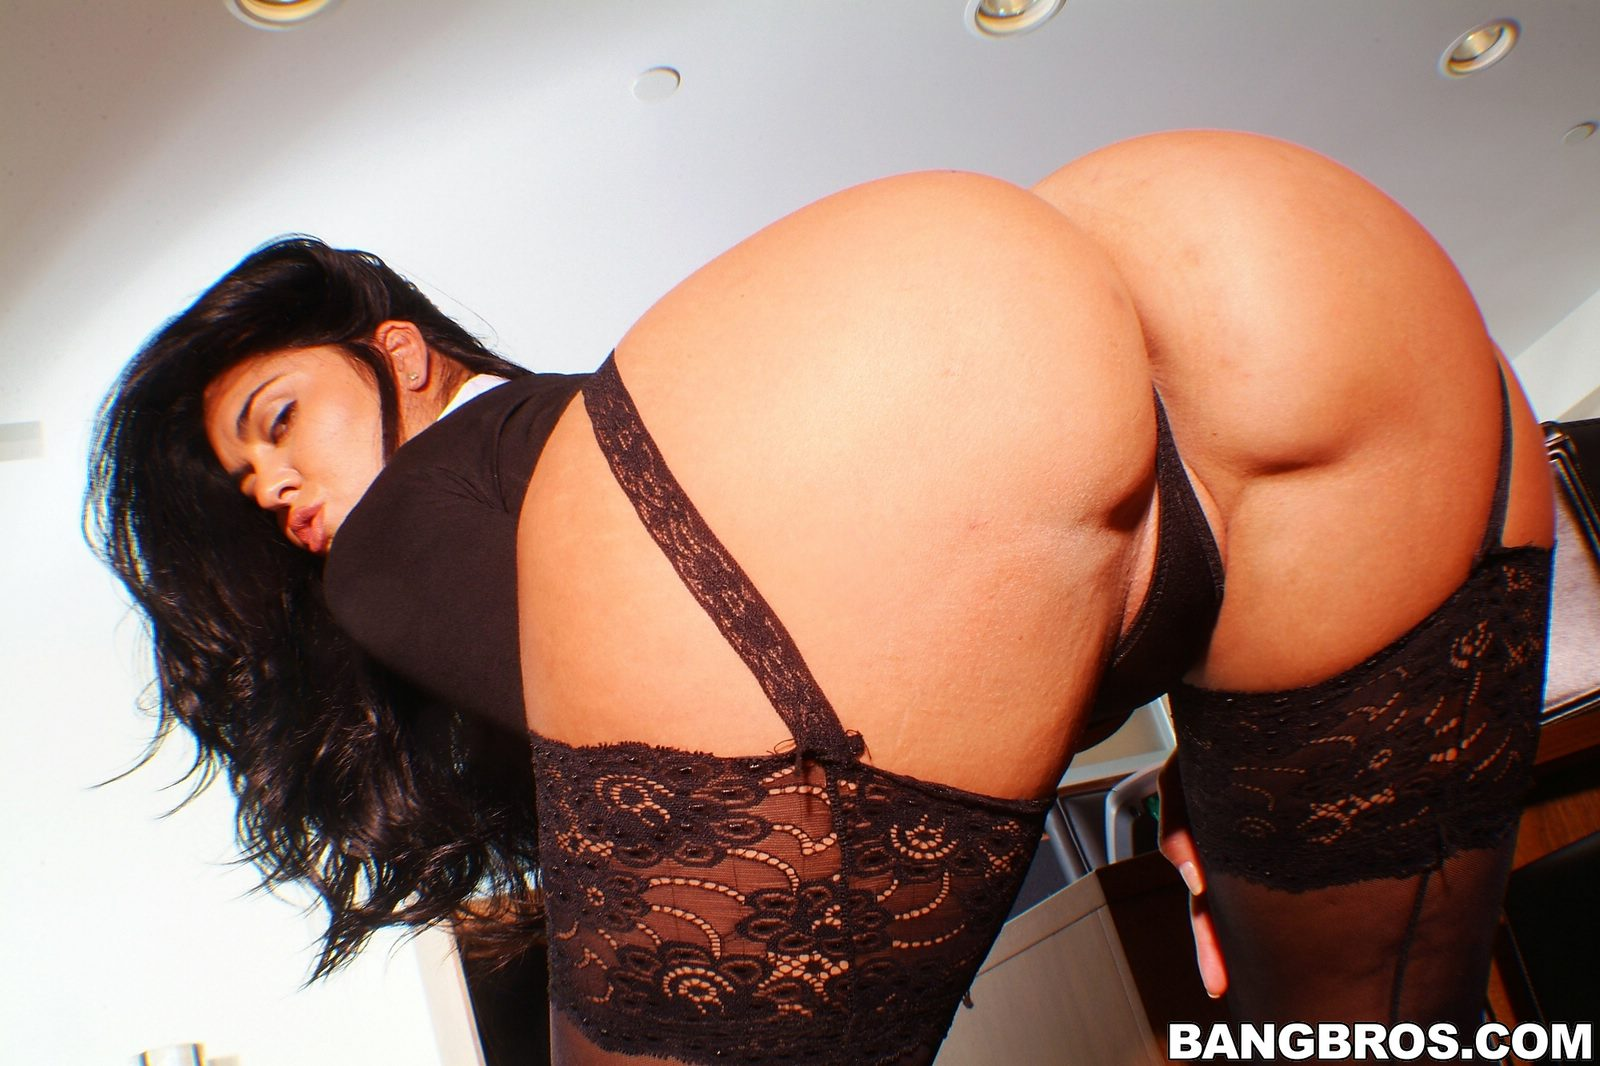 Olivia Olovely Porn olivia lovely ass stockings olivia olovely stockings